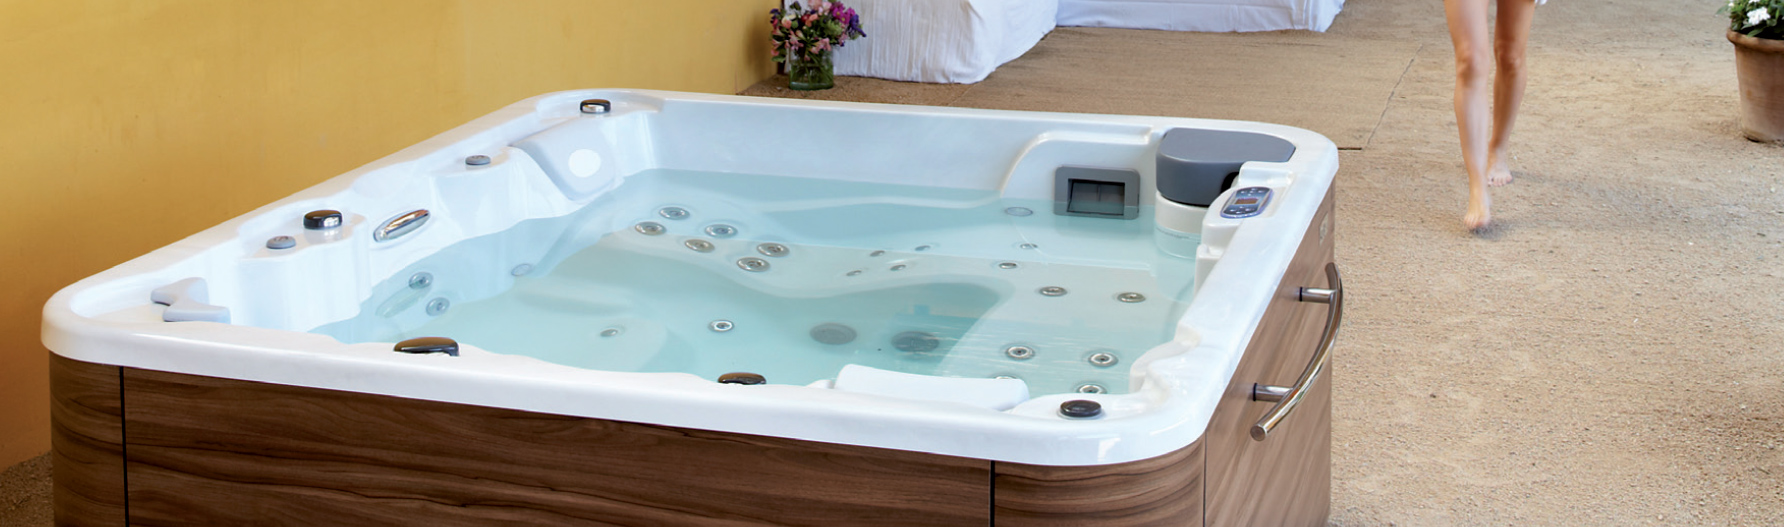 spas jacuzzis installation de spa achat jacuzzi suisse vaud lausanne gen ve morges. Black Bedroom Furniture Sets. Home Design Ideas